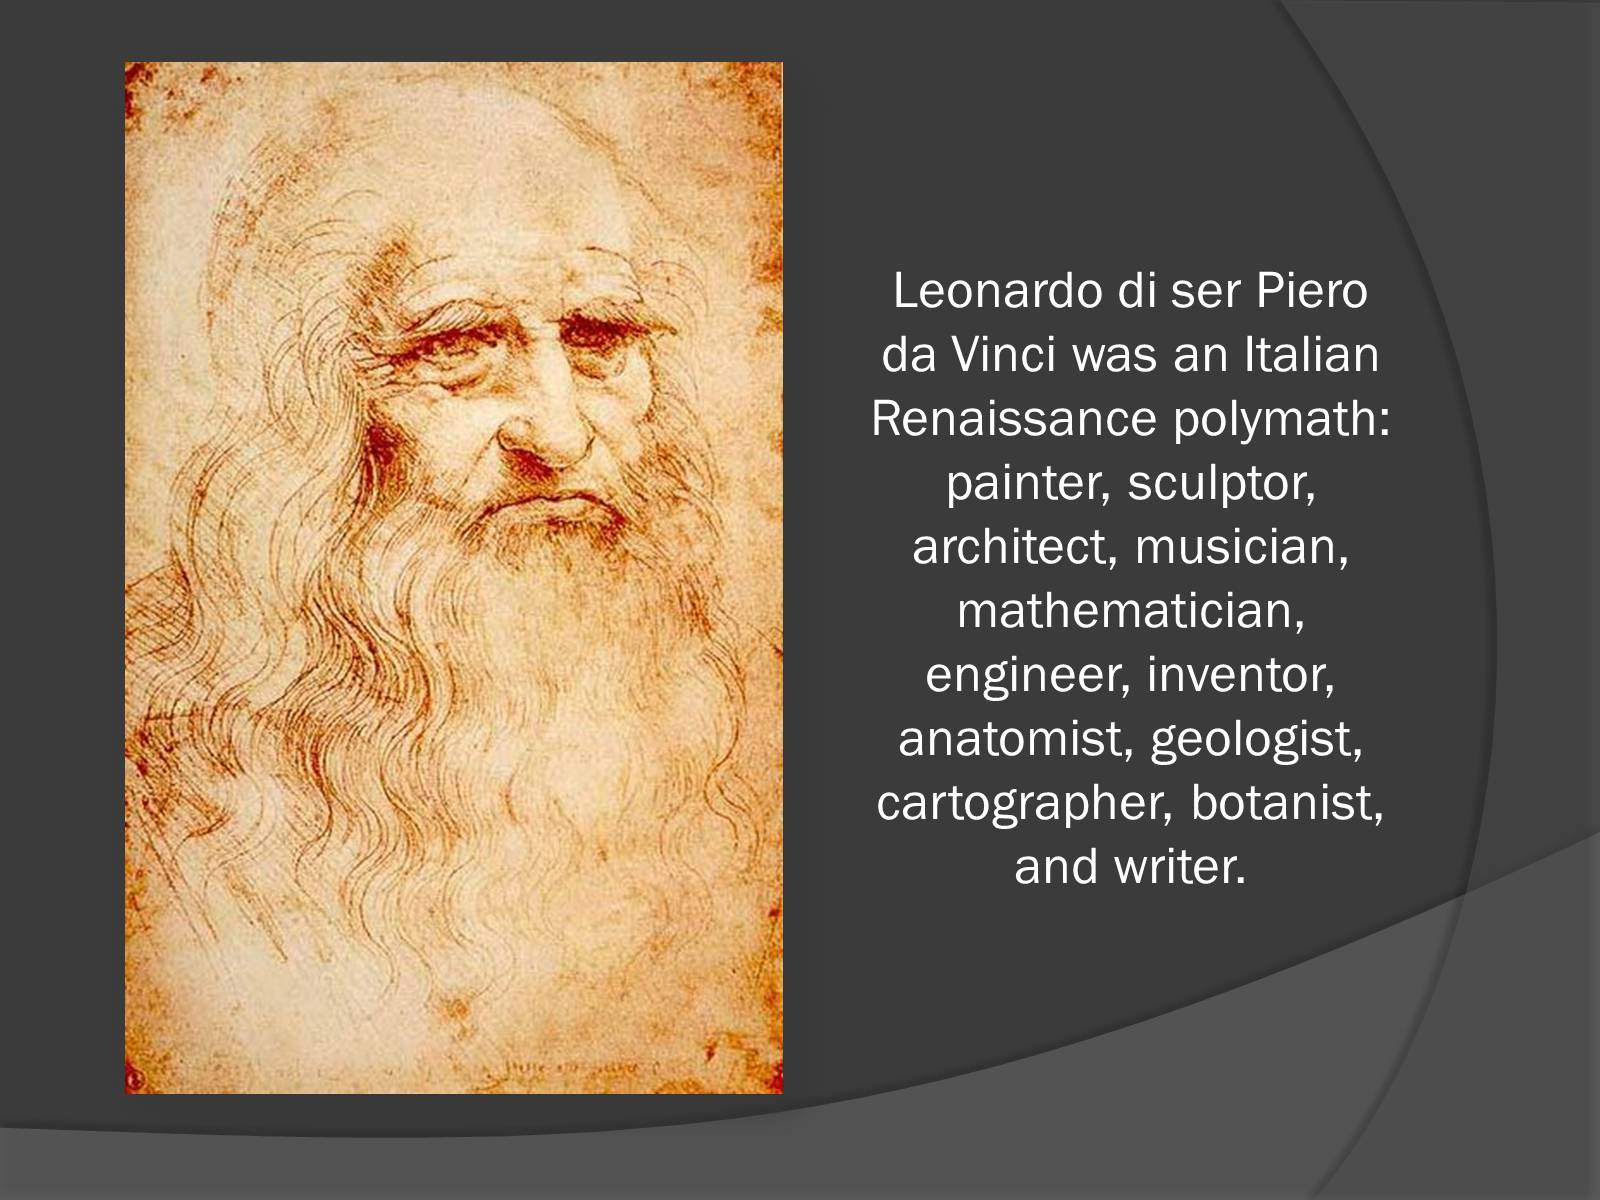 leonardo di ser piero da vinci Leonardo di ser piero da vinci (april 15, 1452 – may 2, 1519) was an italian polymath, having been a scientist, mathematician, engineer, inventor, anatomist, painter, sculptor, architect, botanist, musician and writer.